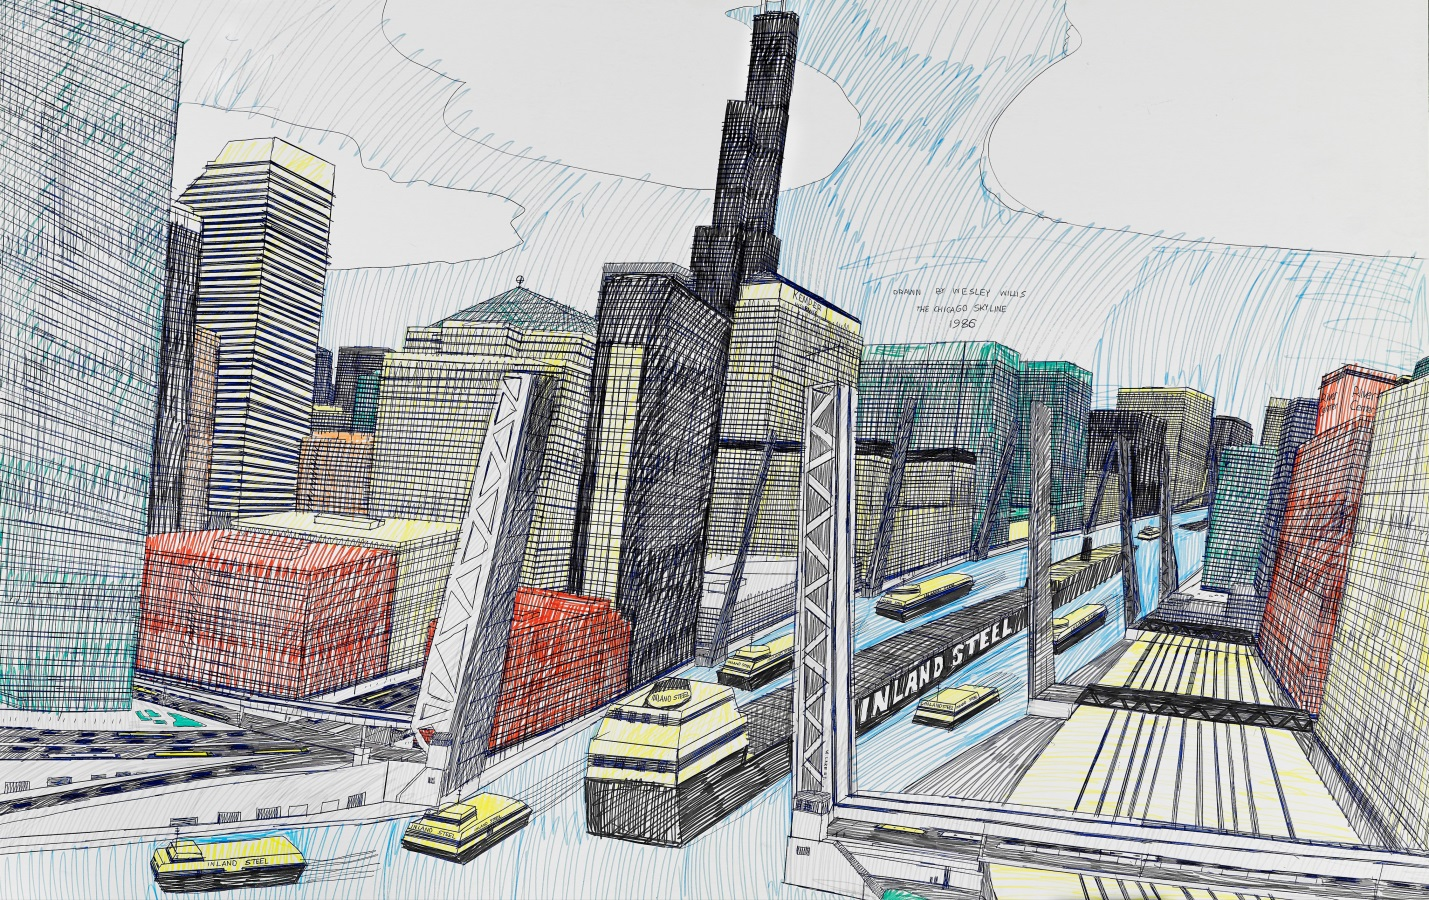 Wesley Willis (American, 1963-2003).  The Chicago Skyline, Sears Tower, Chicago River…  (detail), 1986. Ballpoint pen and felt tip pen on board, 28 x 42 in. Collection of Rolf and Maral Achilles